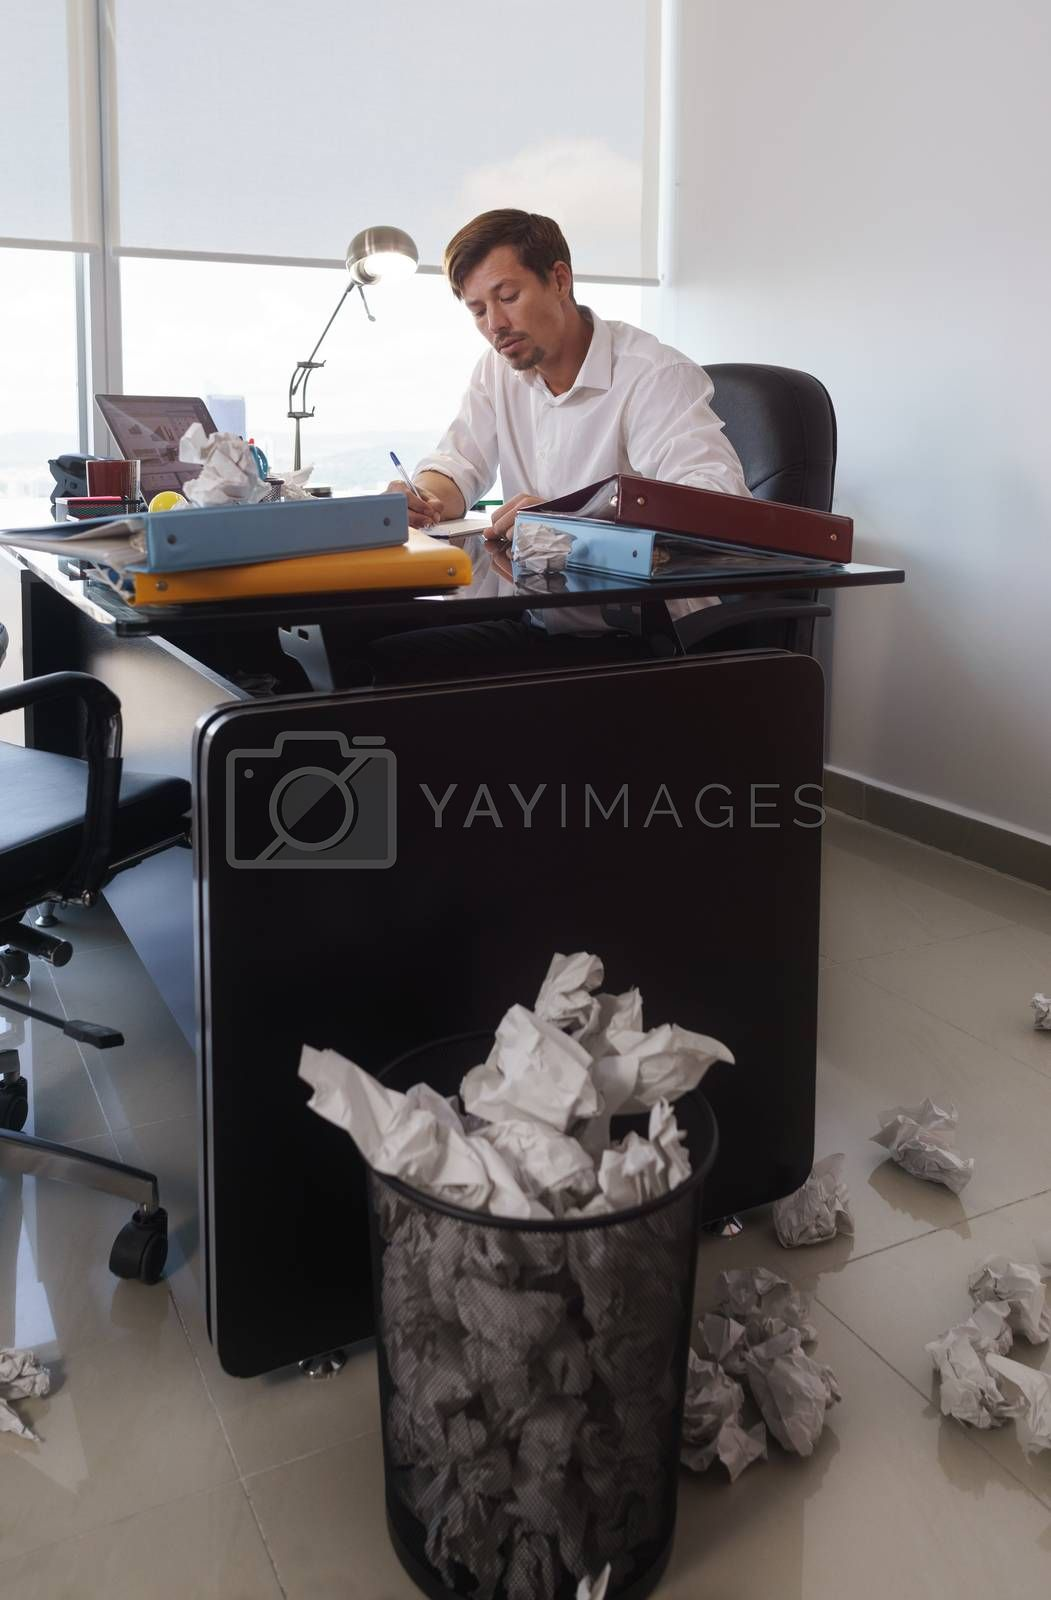 Corporate manager in modern office tries to write a job letter. The man is frustrated and keeps on throwing paper on desk and trash bin